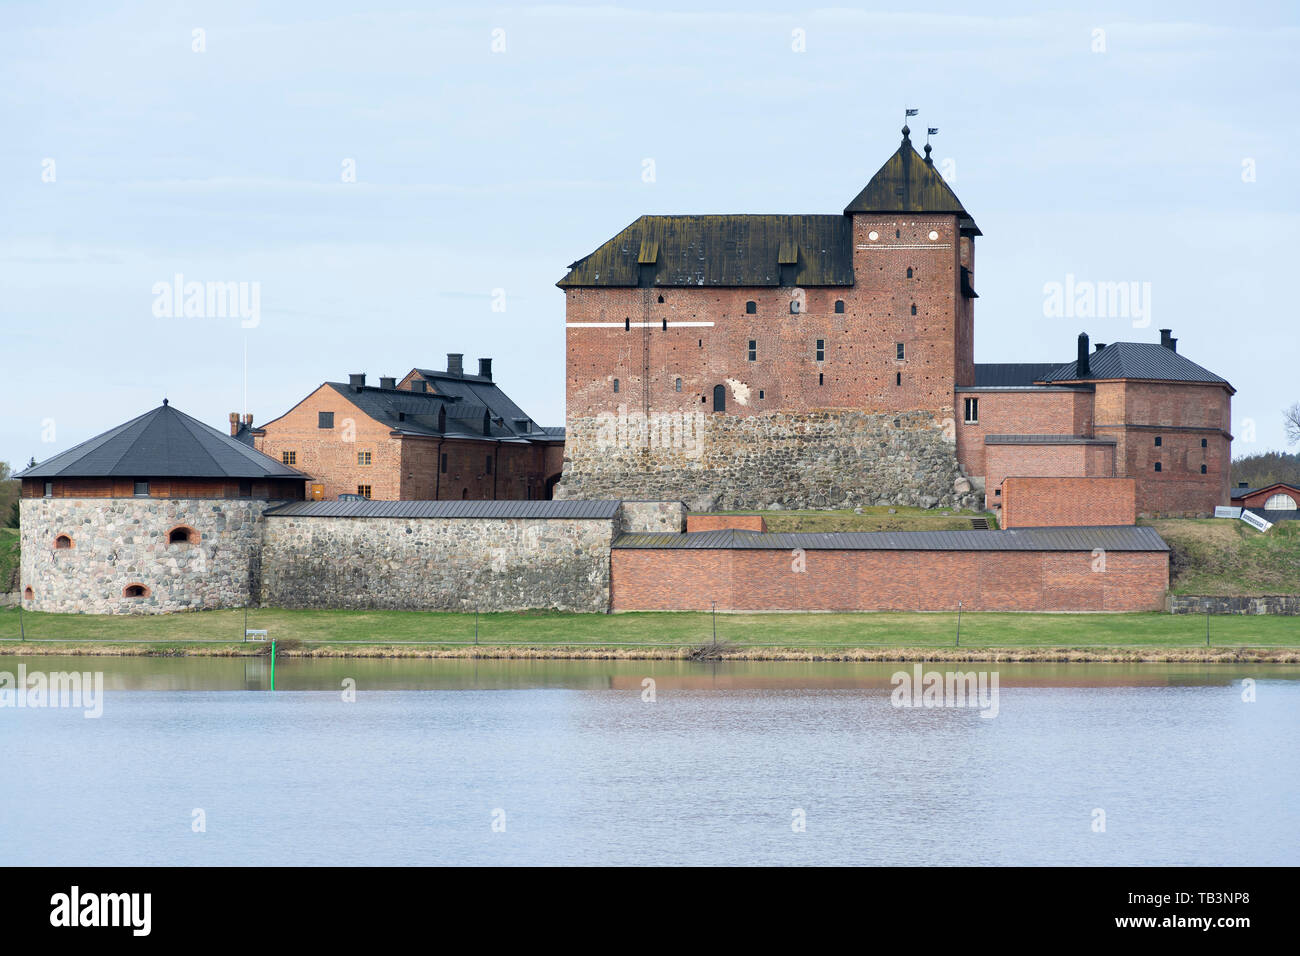 Hame castle by the Vanajavesi lake in Hämeenlinna Finland Stock Photo